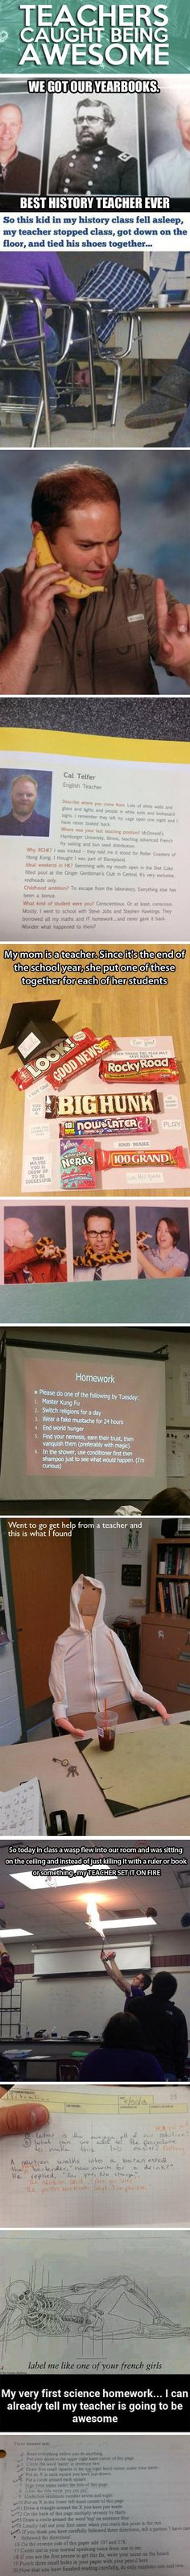 Teachers being awesome.